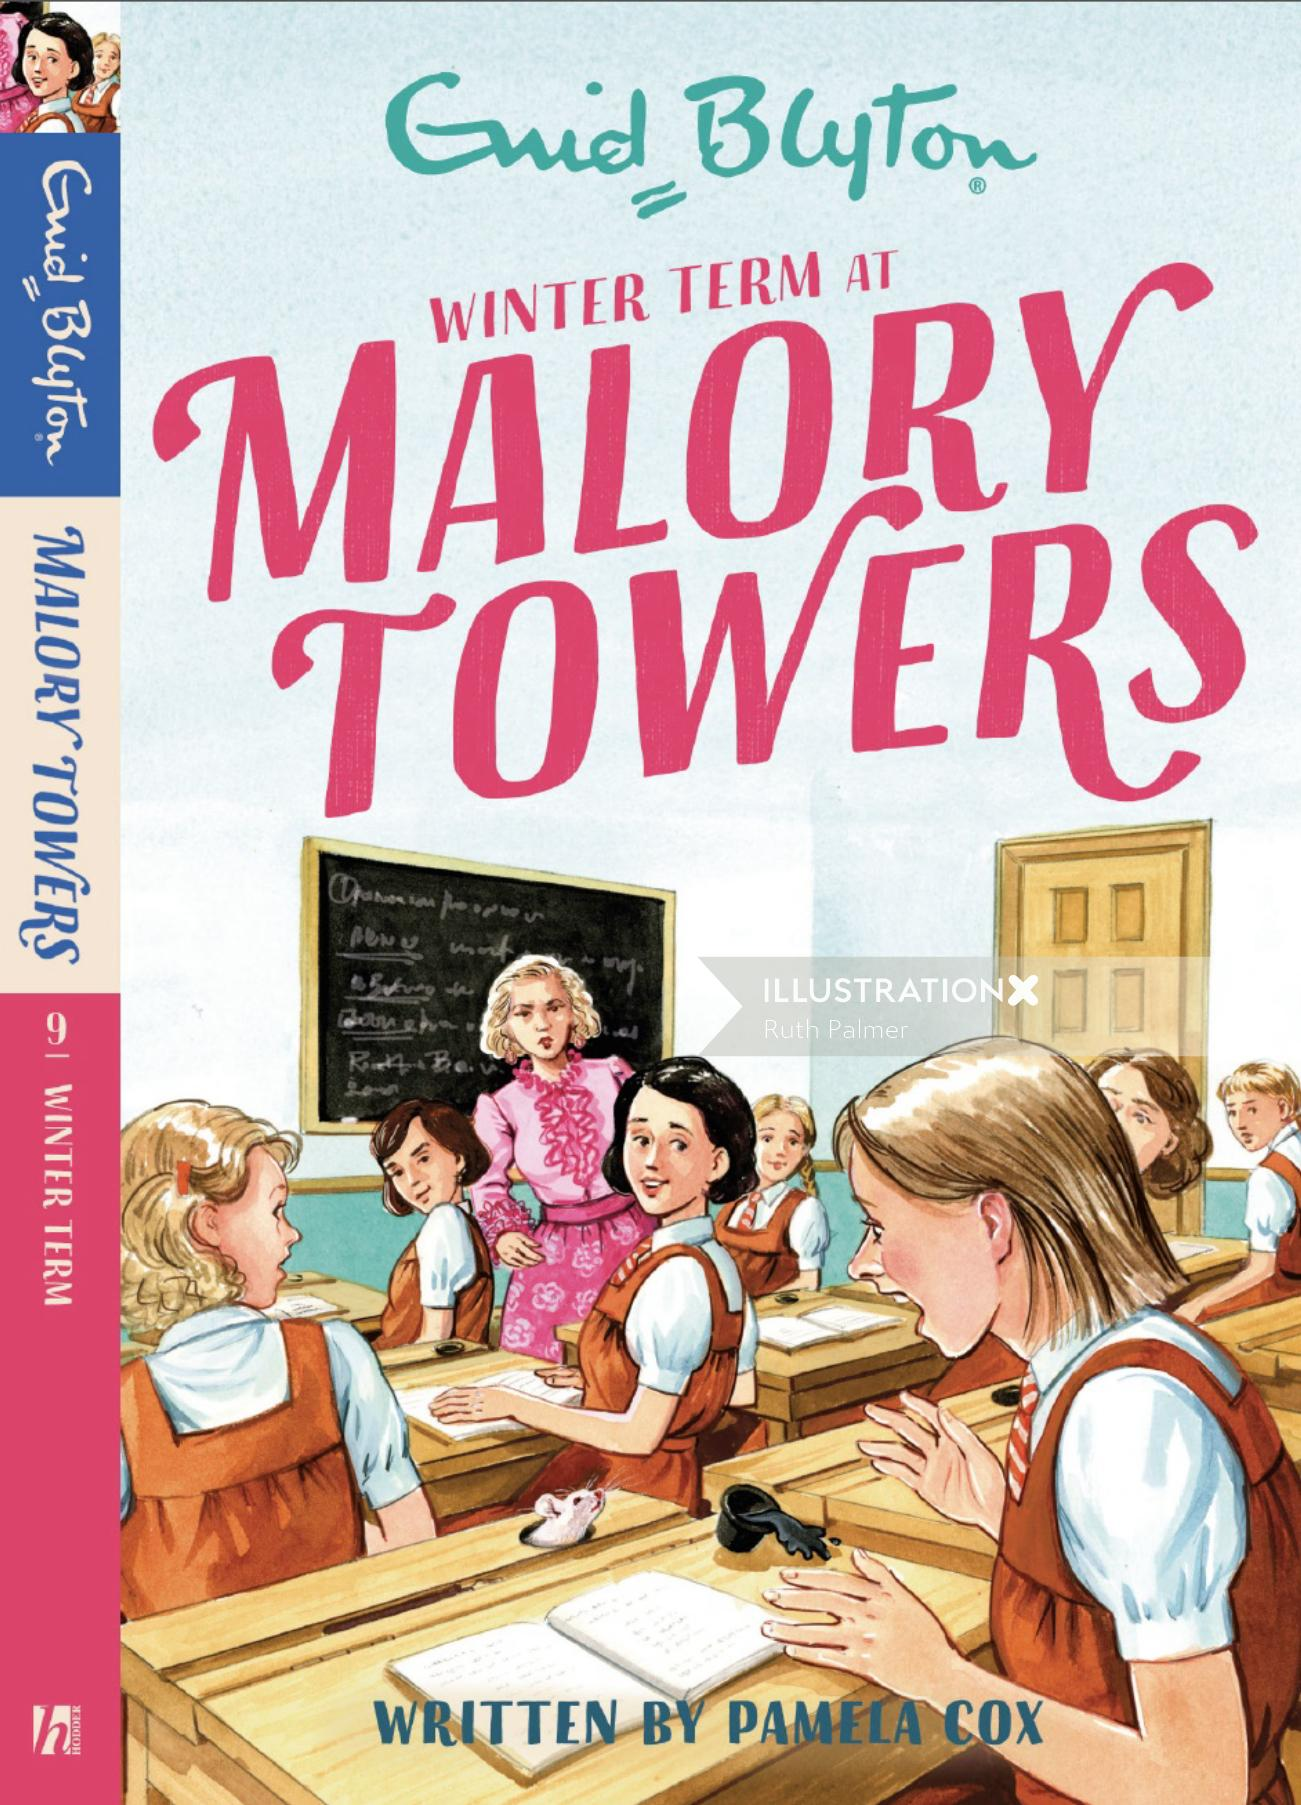 Winter term at malory towers book cover illustration